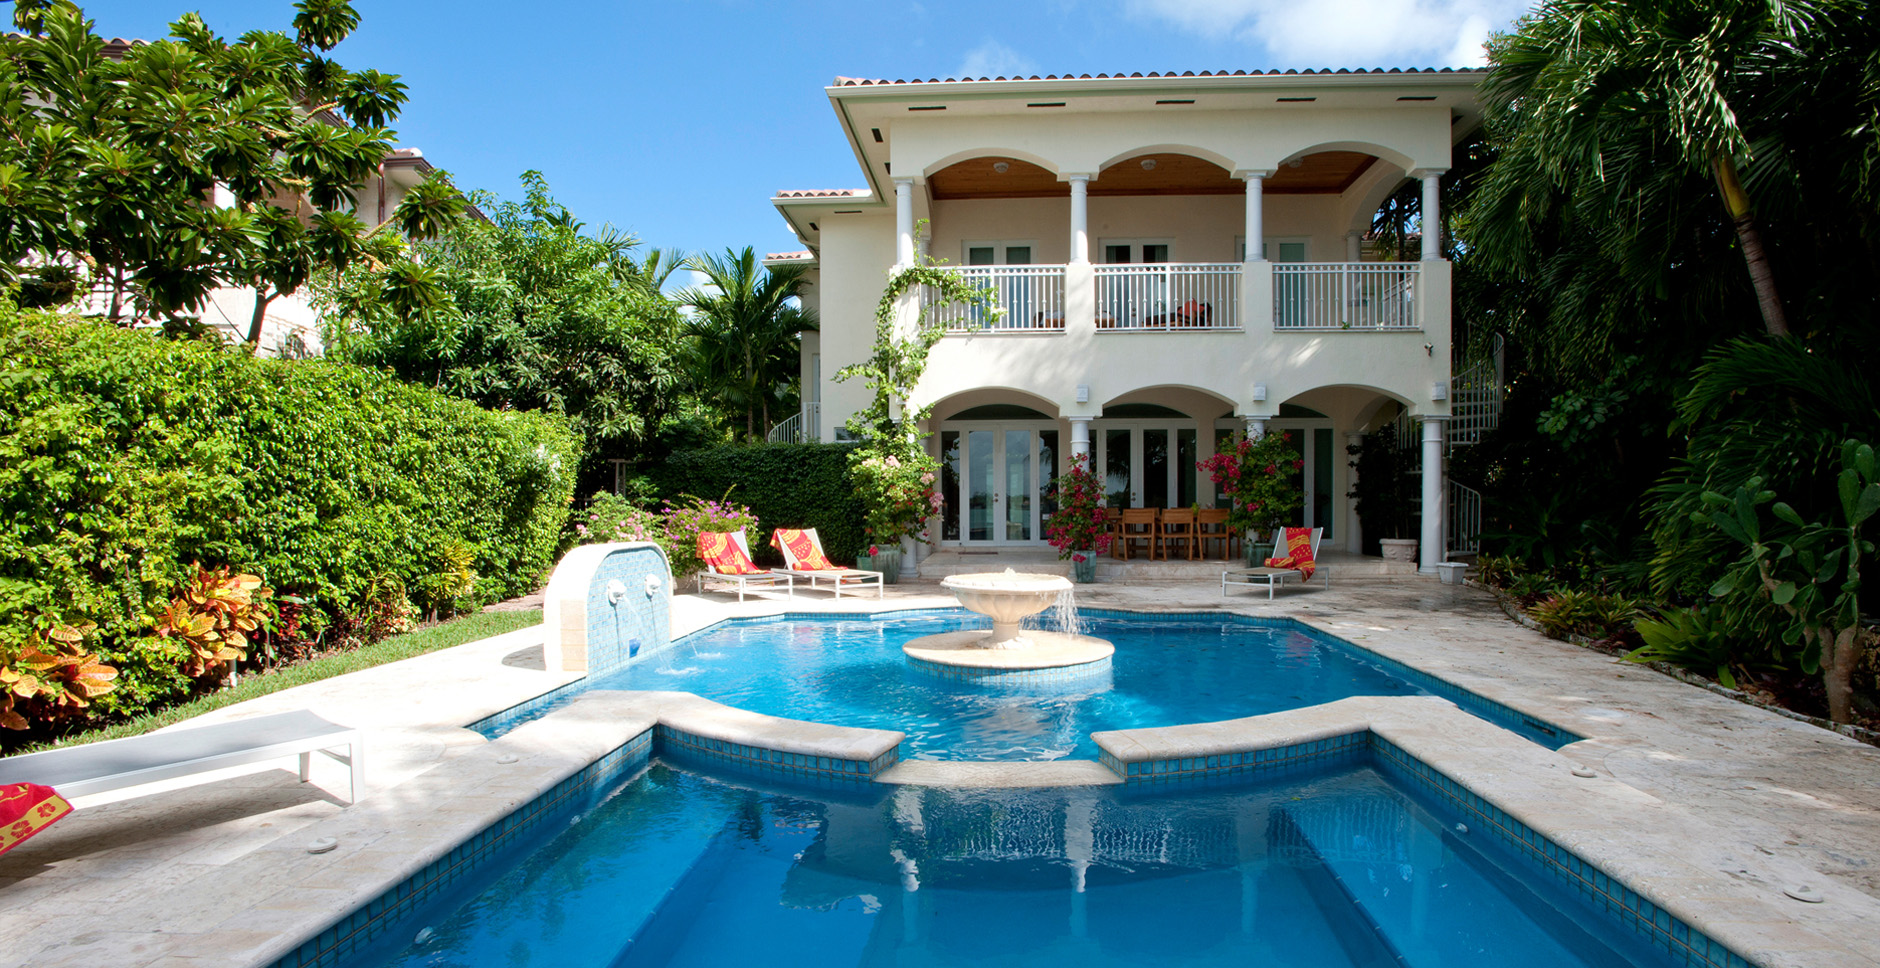 florida vacation rentals holiday rentals florida south florida rh dreamexoticrentals com